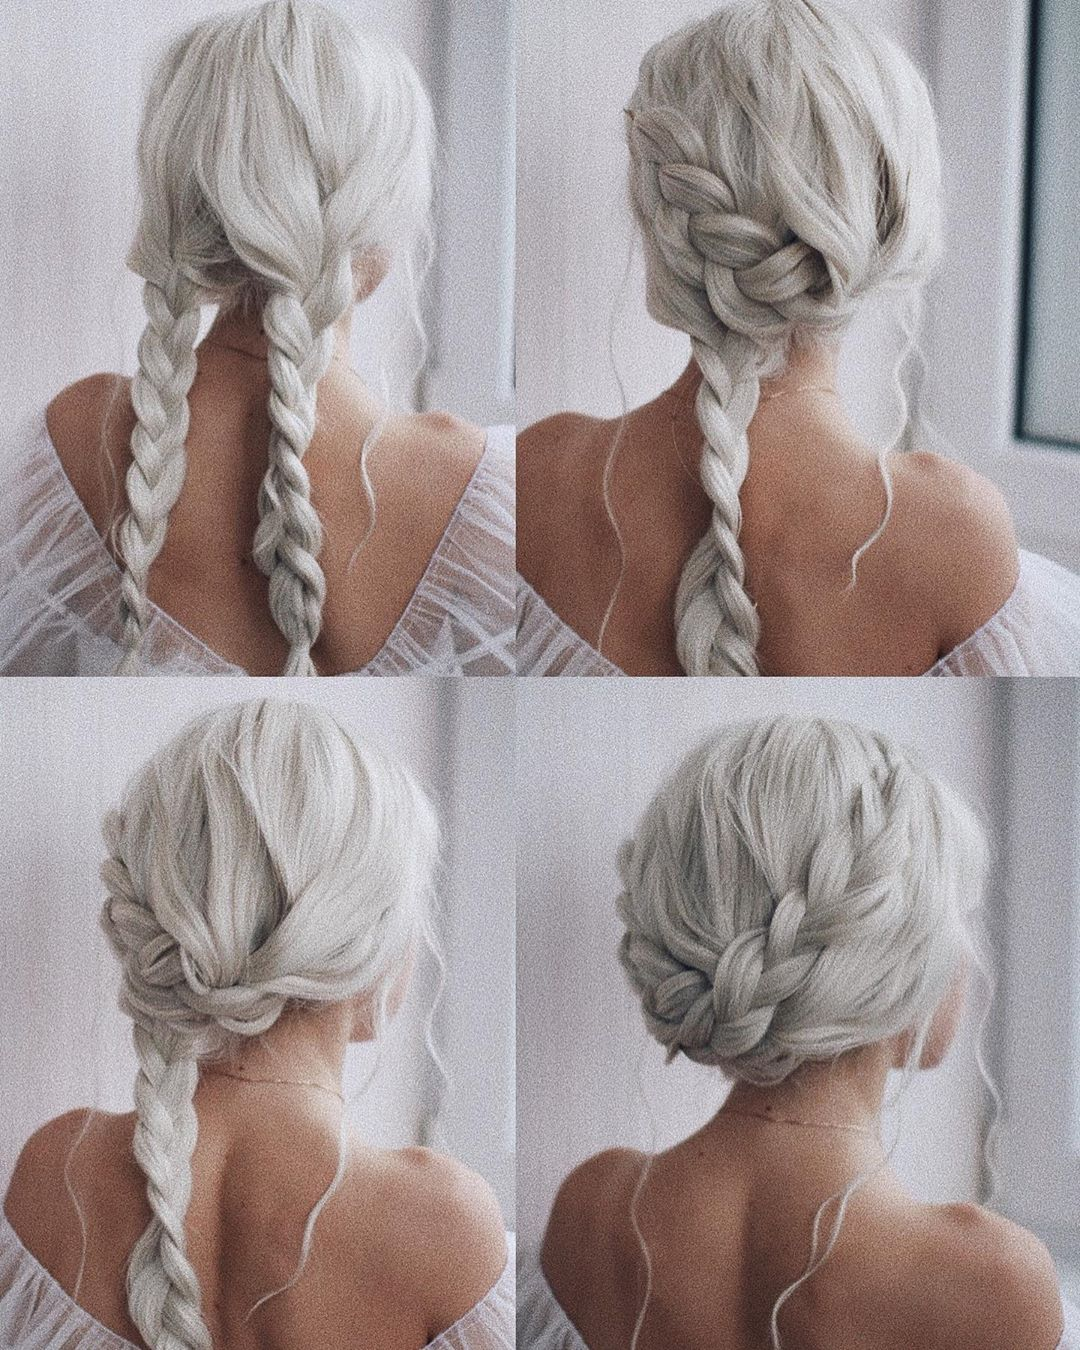 30 Easy Hairstyles For Long Hair With Simple Instructions